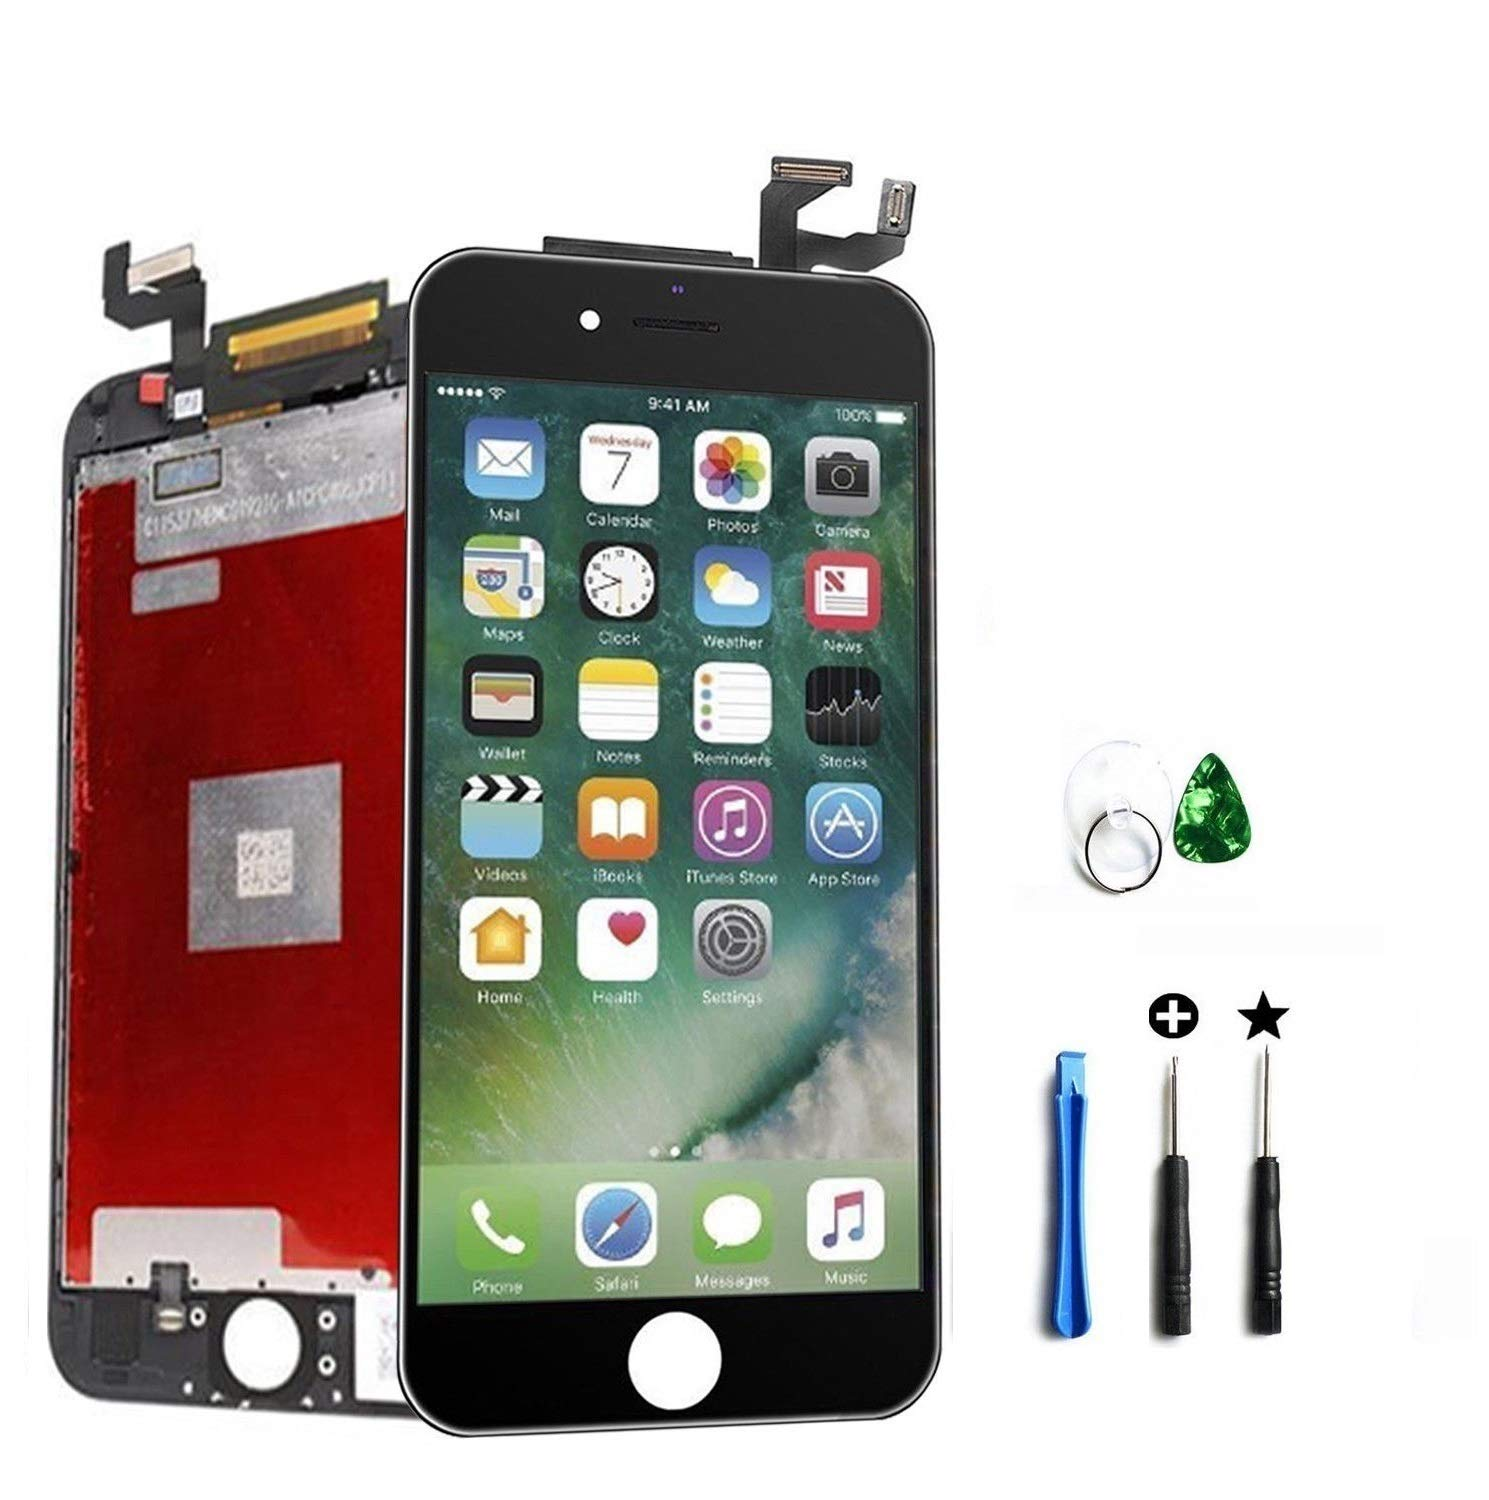 Turtlescreen Premium Quality Replacement Screen Compatible With iPhone 6s 4.7 A1633, A1688, A1700 - White Digitizer Display LCD Touch Screen Glass Frame Assembly